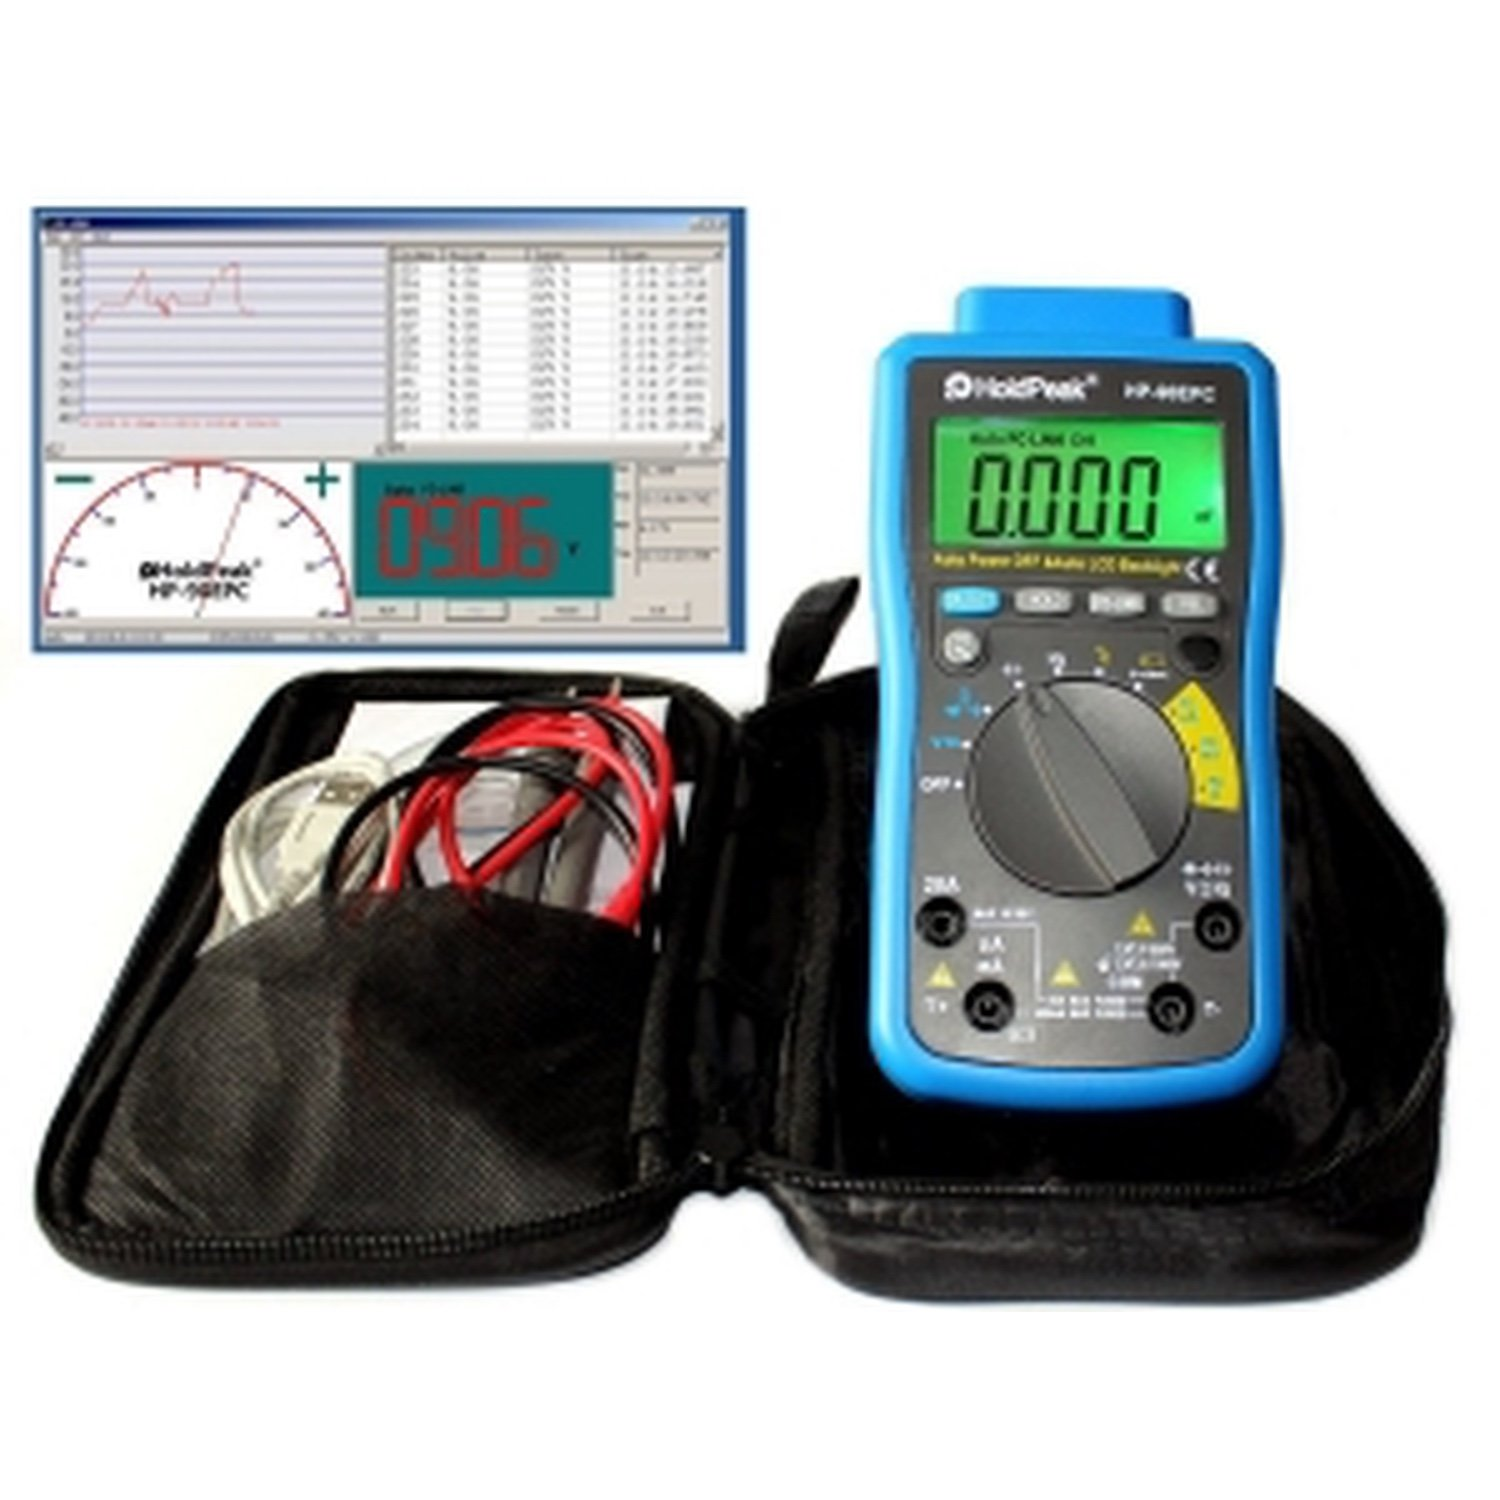 HP-90EPC HoldPeak TRUE RMS Auto Ranging Digital Multimeter with Battery Test/Min Max Value цена